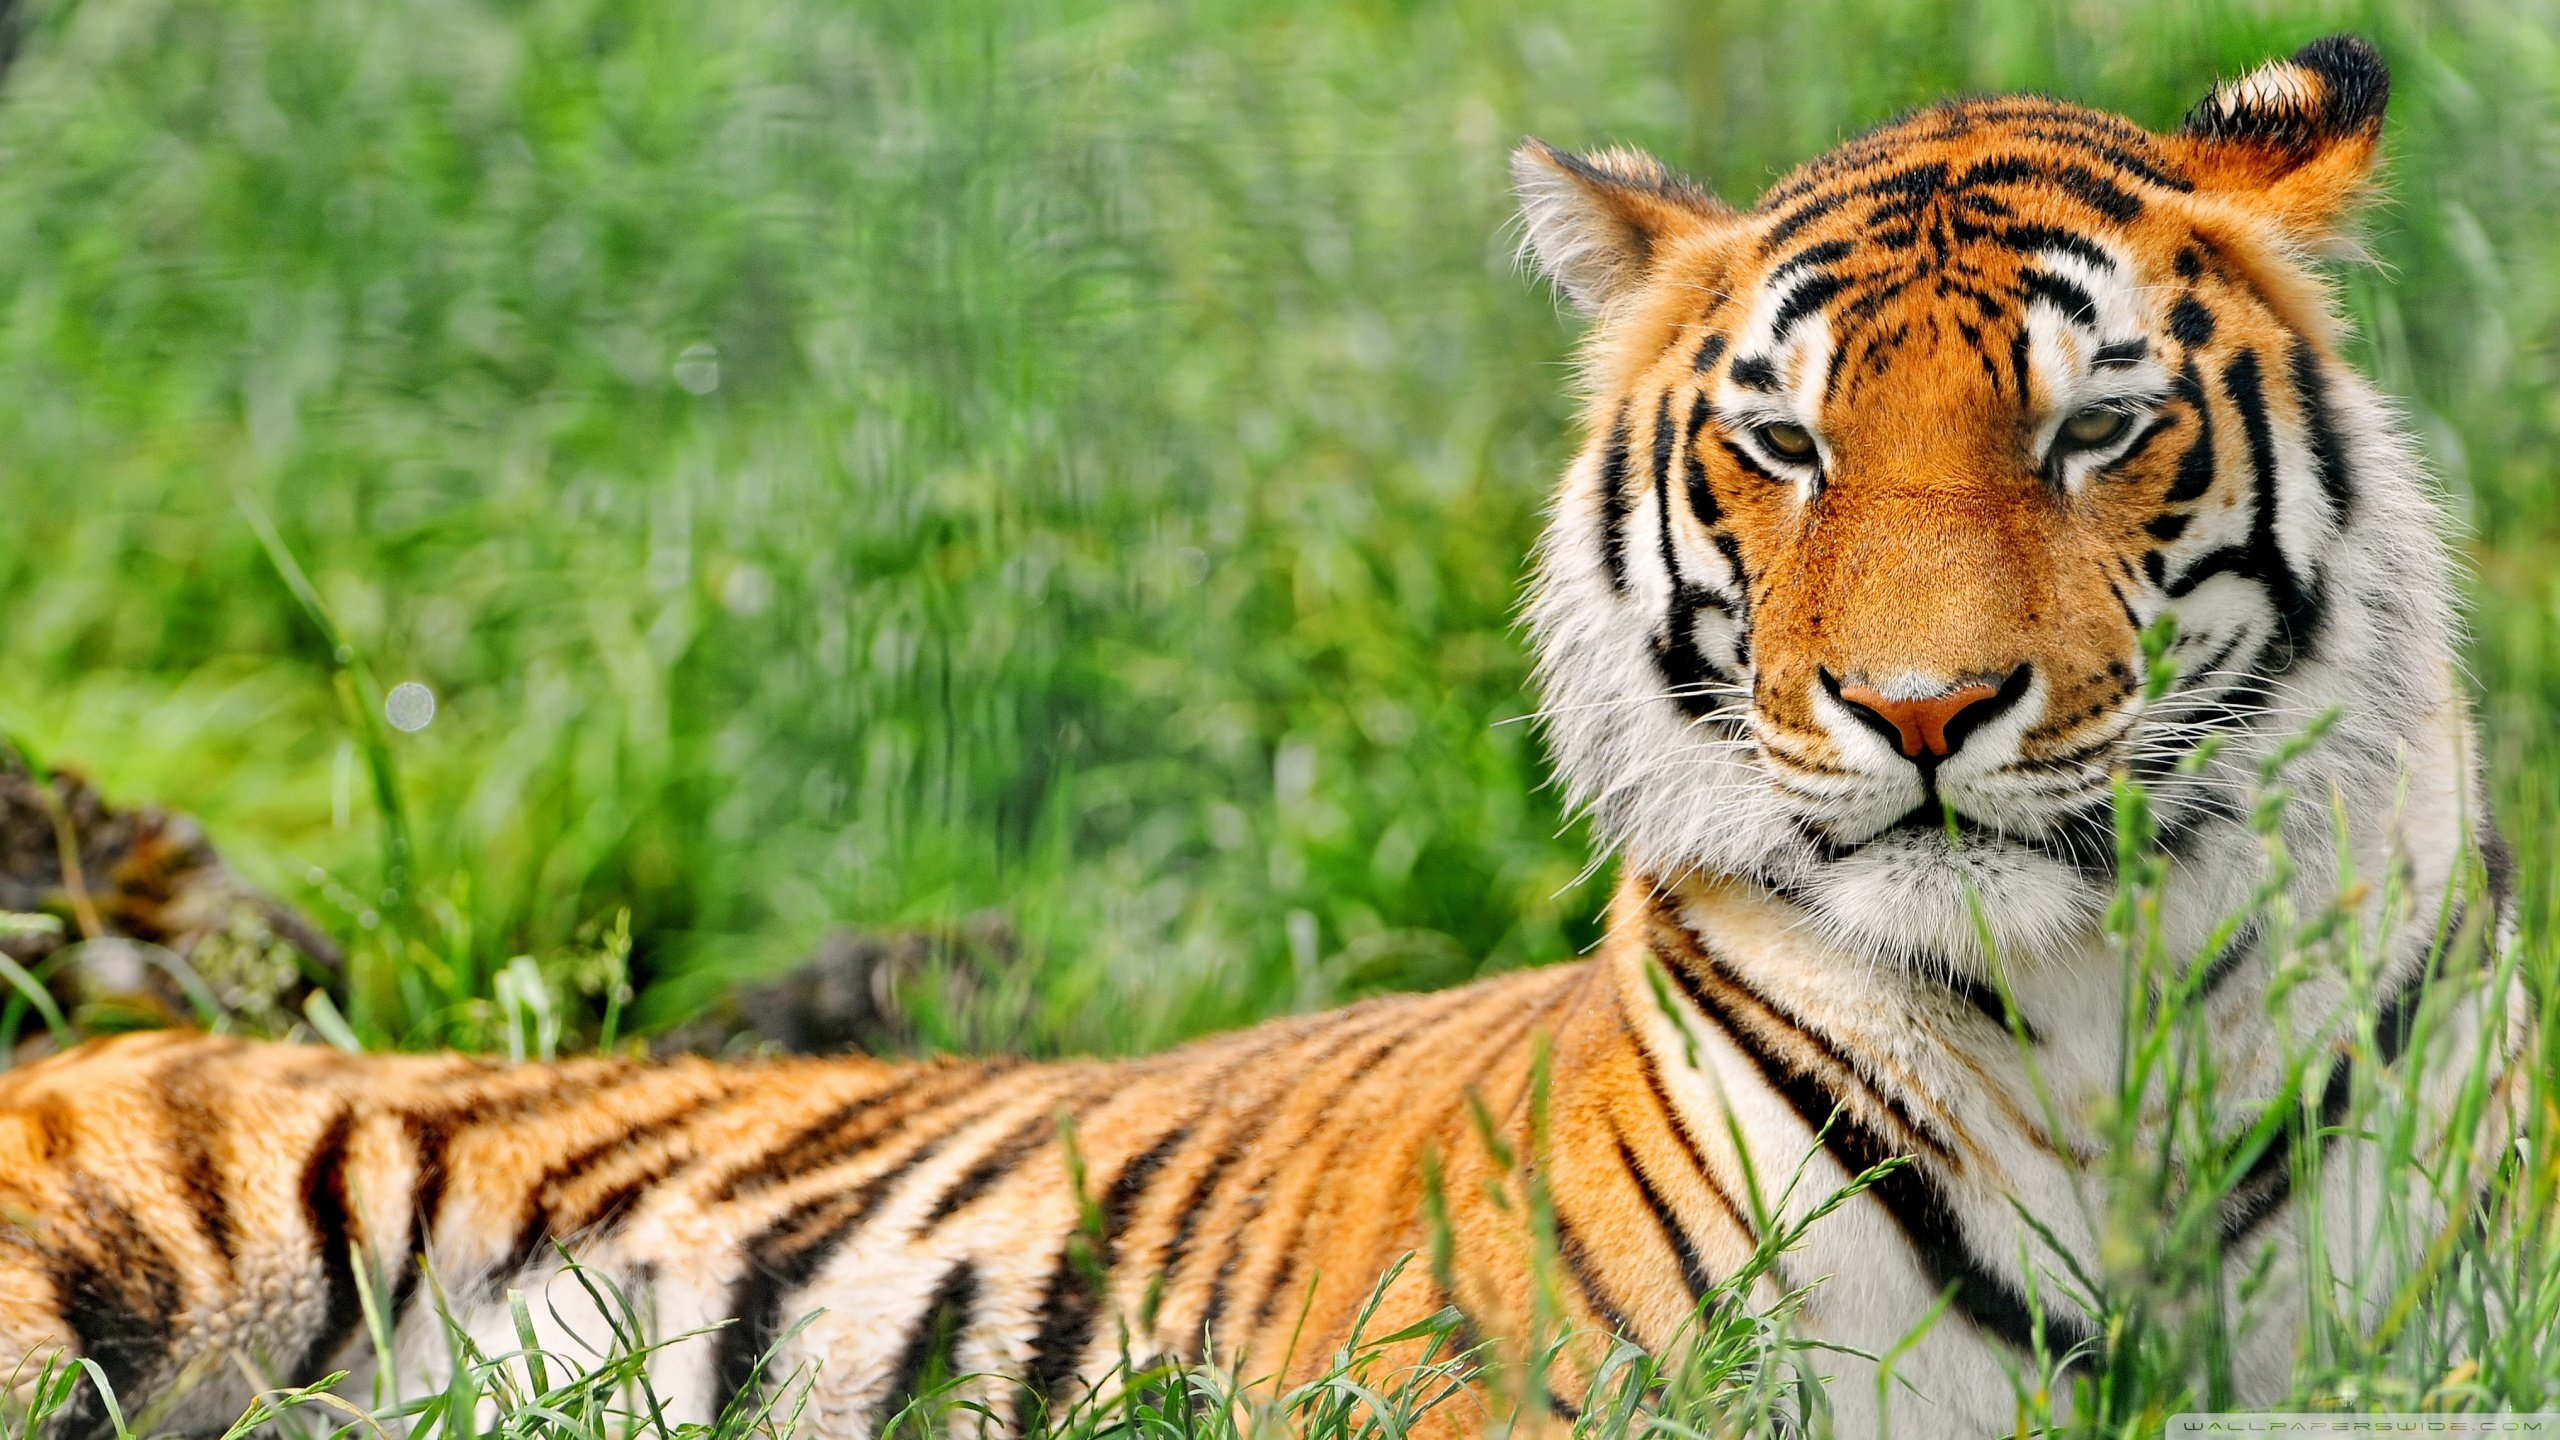 Awesome Tiger free wallpaper ID:116261 for hd 2560x1440 desktop